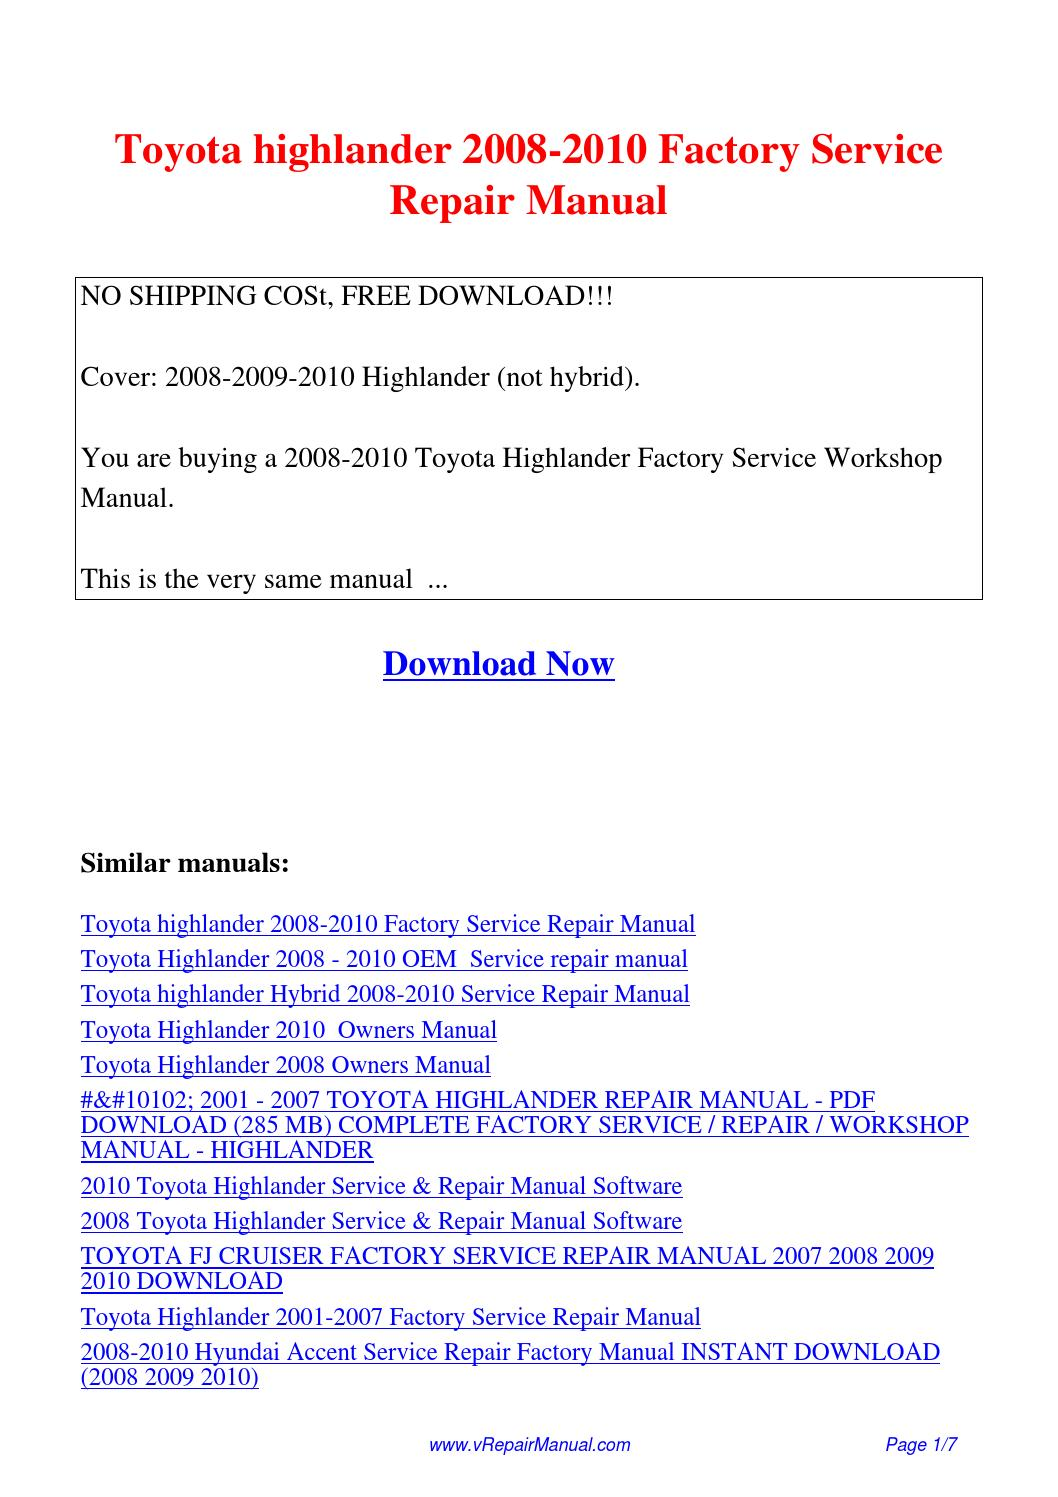 Toyota highlander 2008-2010 Factory Service Repair Manual.pdf by David  Zhang - issuu